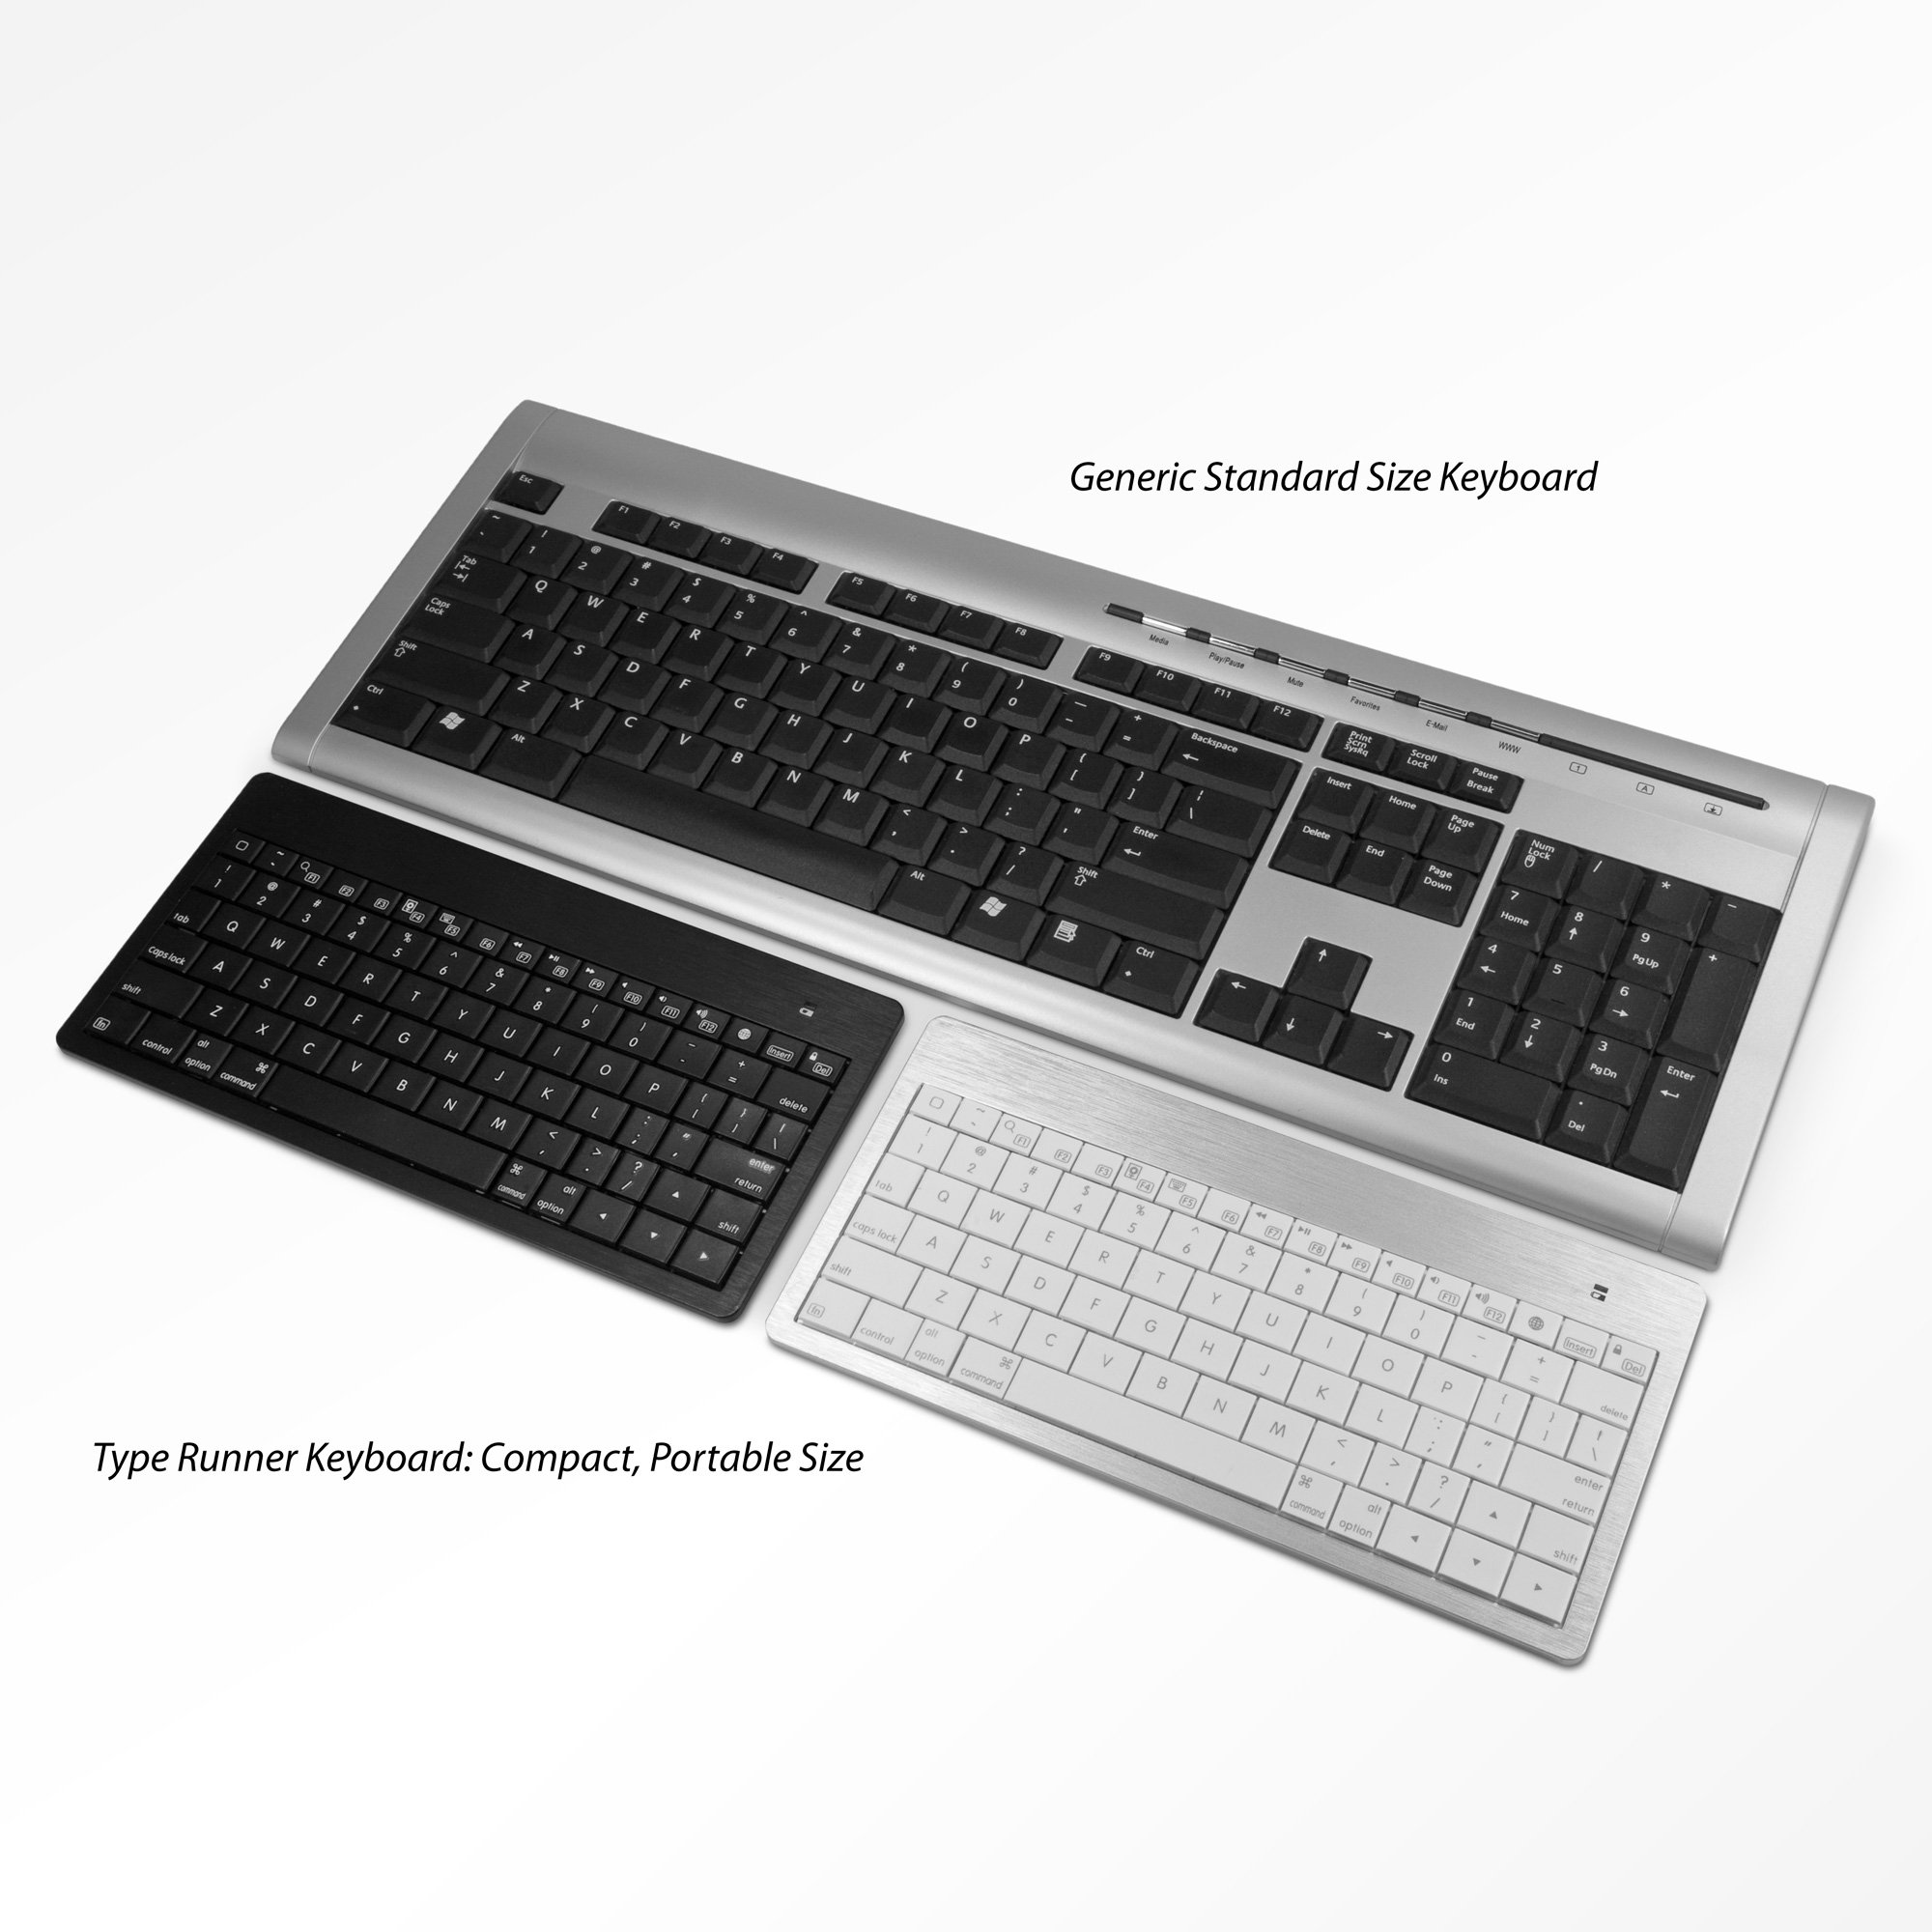 BoxWave Type Runner Keyboard for the Apple iPad 4 - Wireless Bluetooth iPad Keyboard, Ultra Portable iPad4 Bluetooth Wireless Keyboard with Integrated Apple Commands for The new iPad 4 (Jet Black)